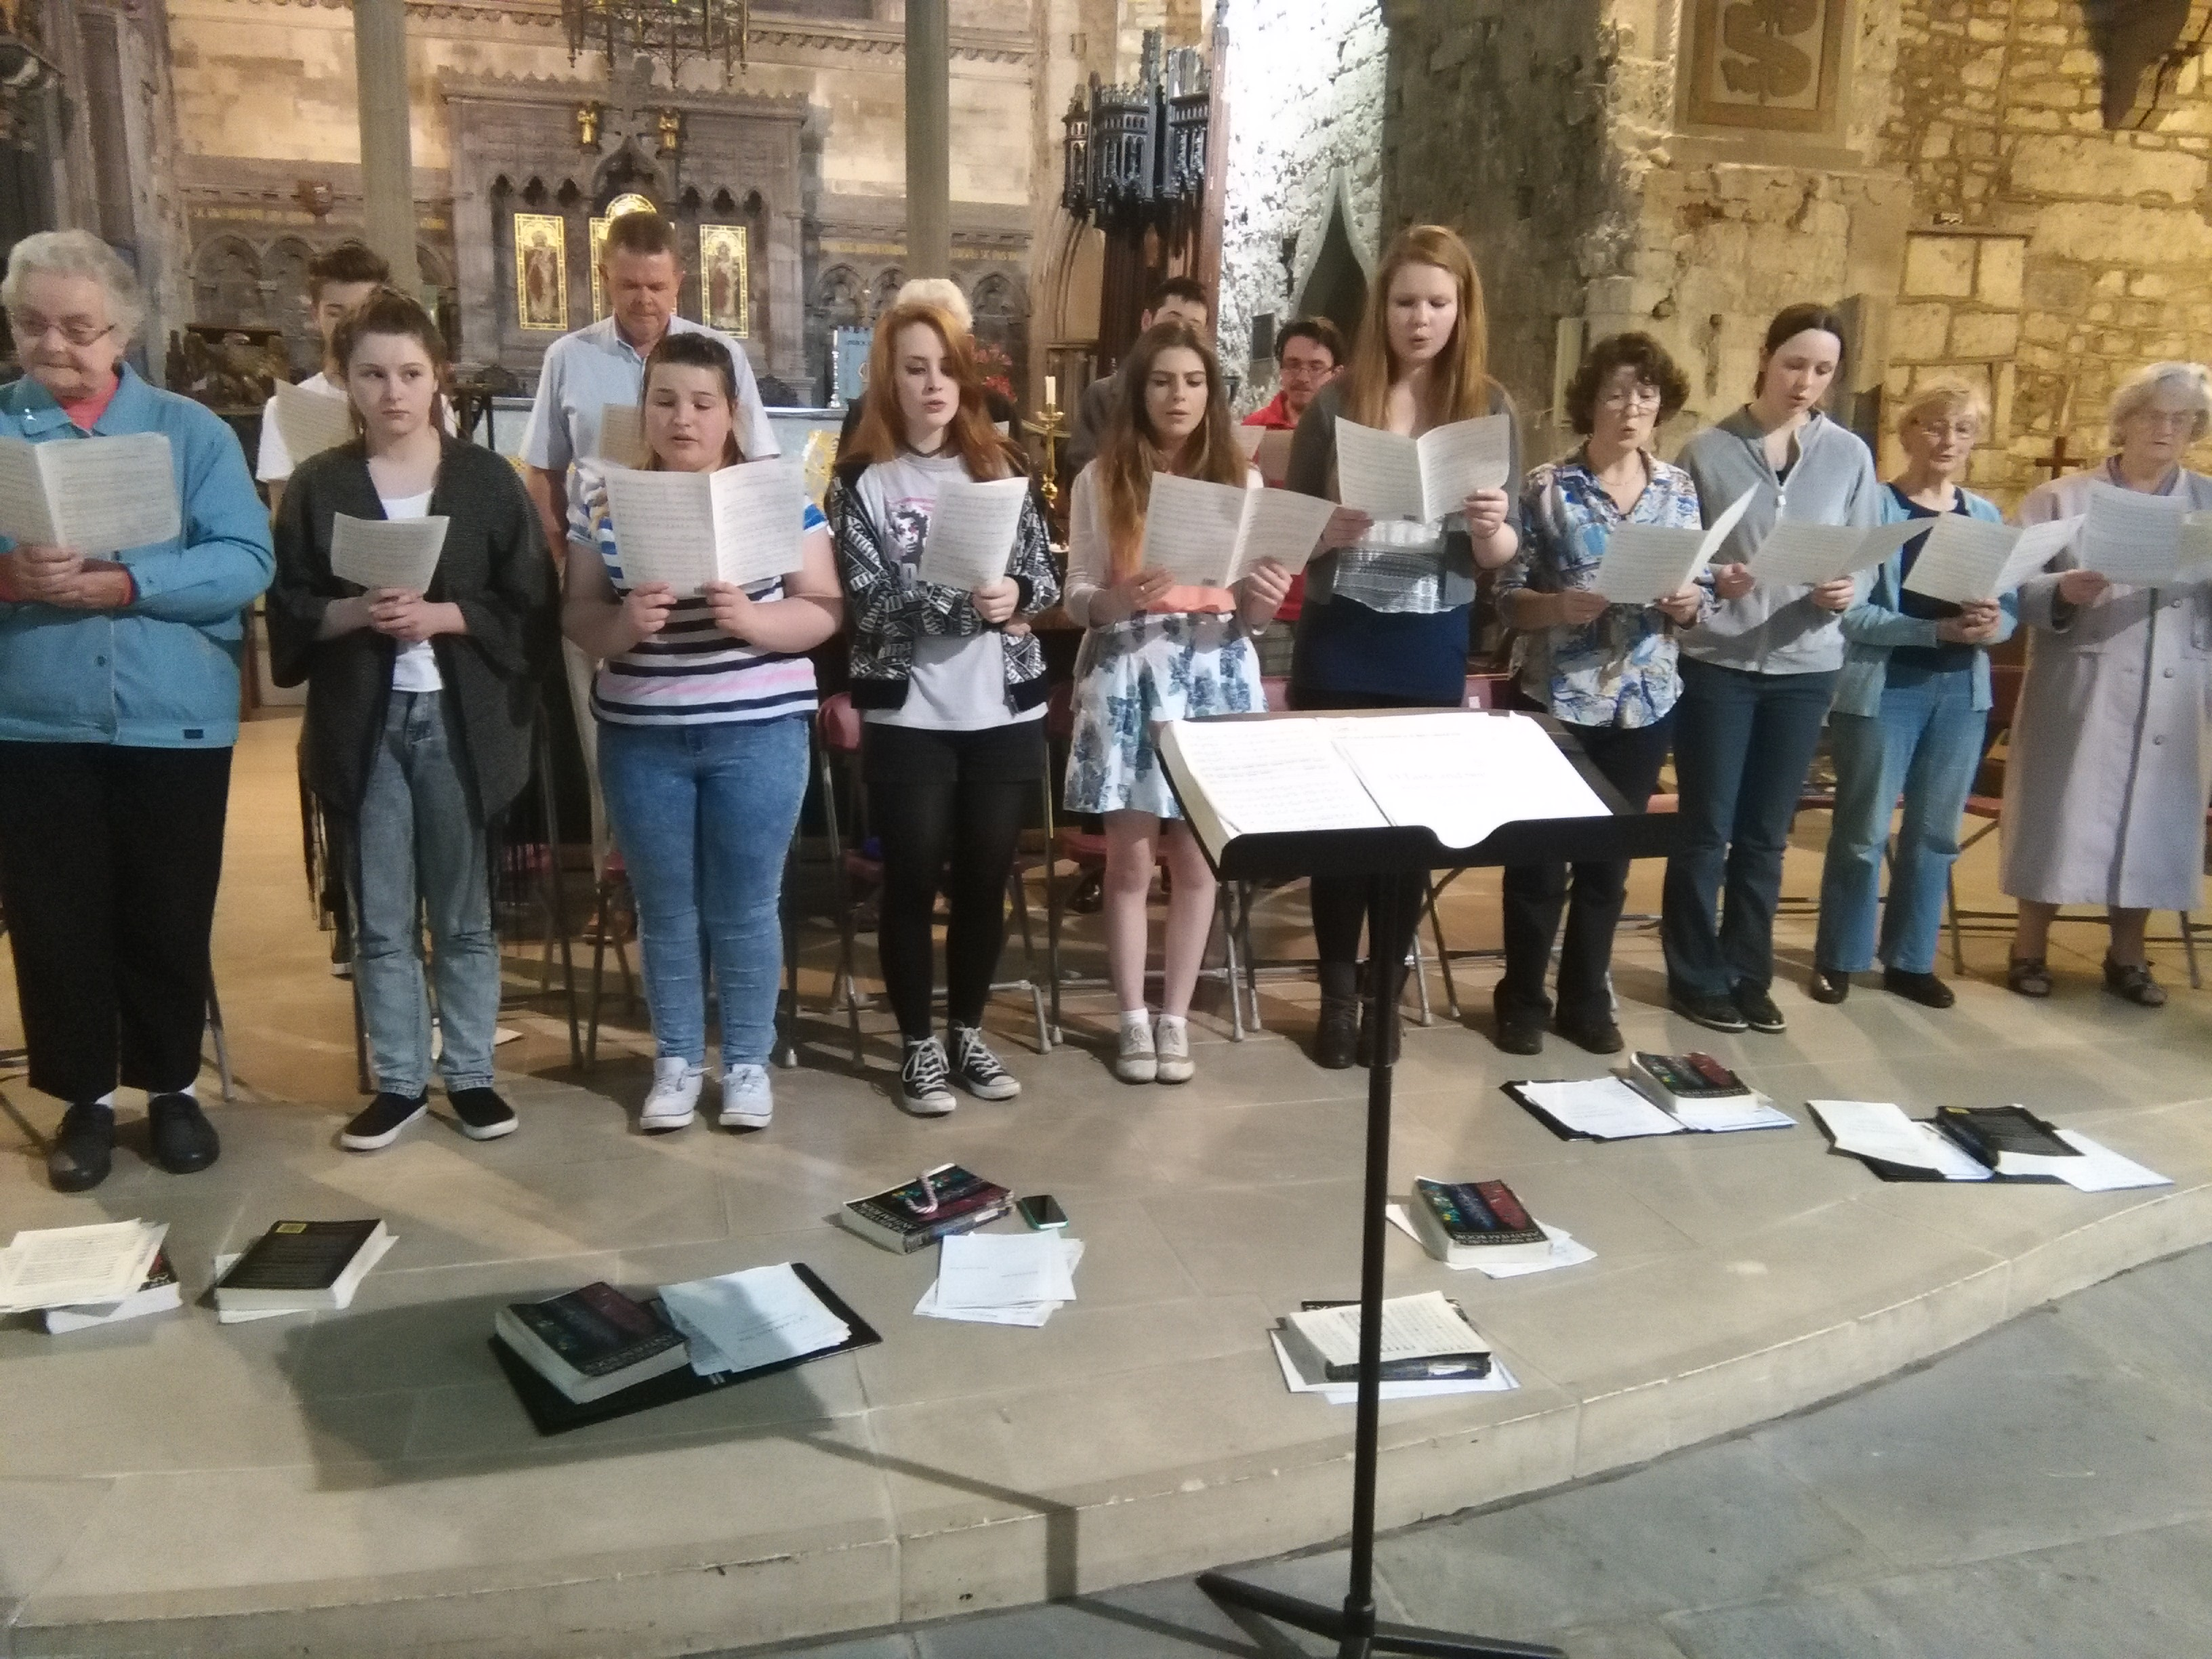 The St Mary's Cathedral Choir rehearse in the Limerick city's medieval cathedral